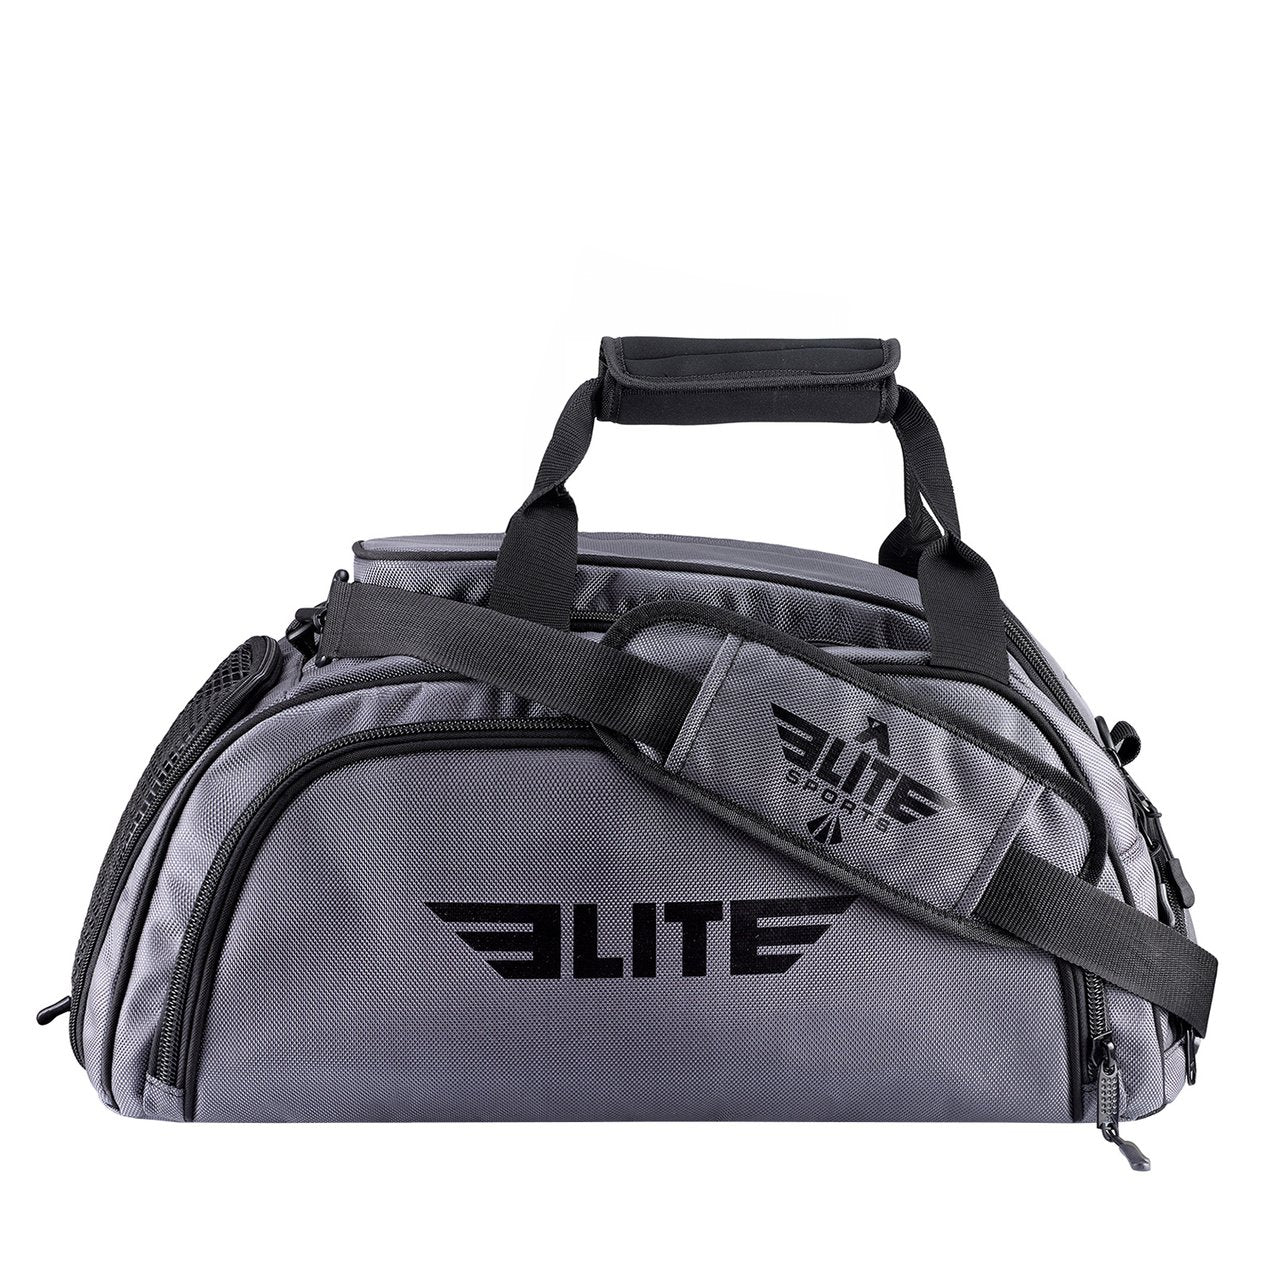 Load image into Gallery viewer, Elite Sports Warrior Series Gray Medium Duffel Training Gear Gym Bag & Backpack